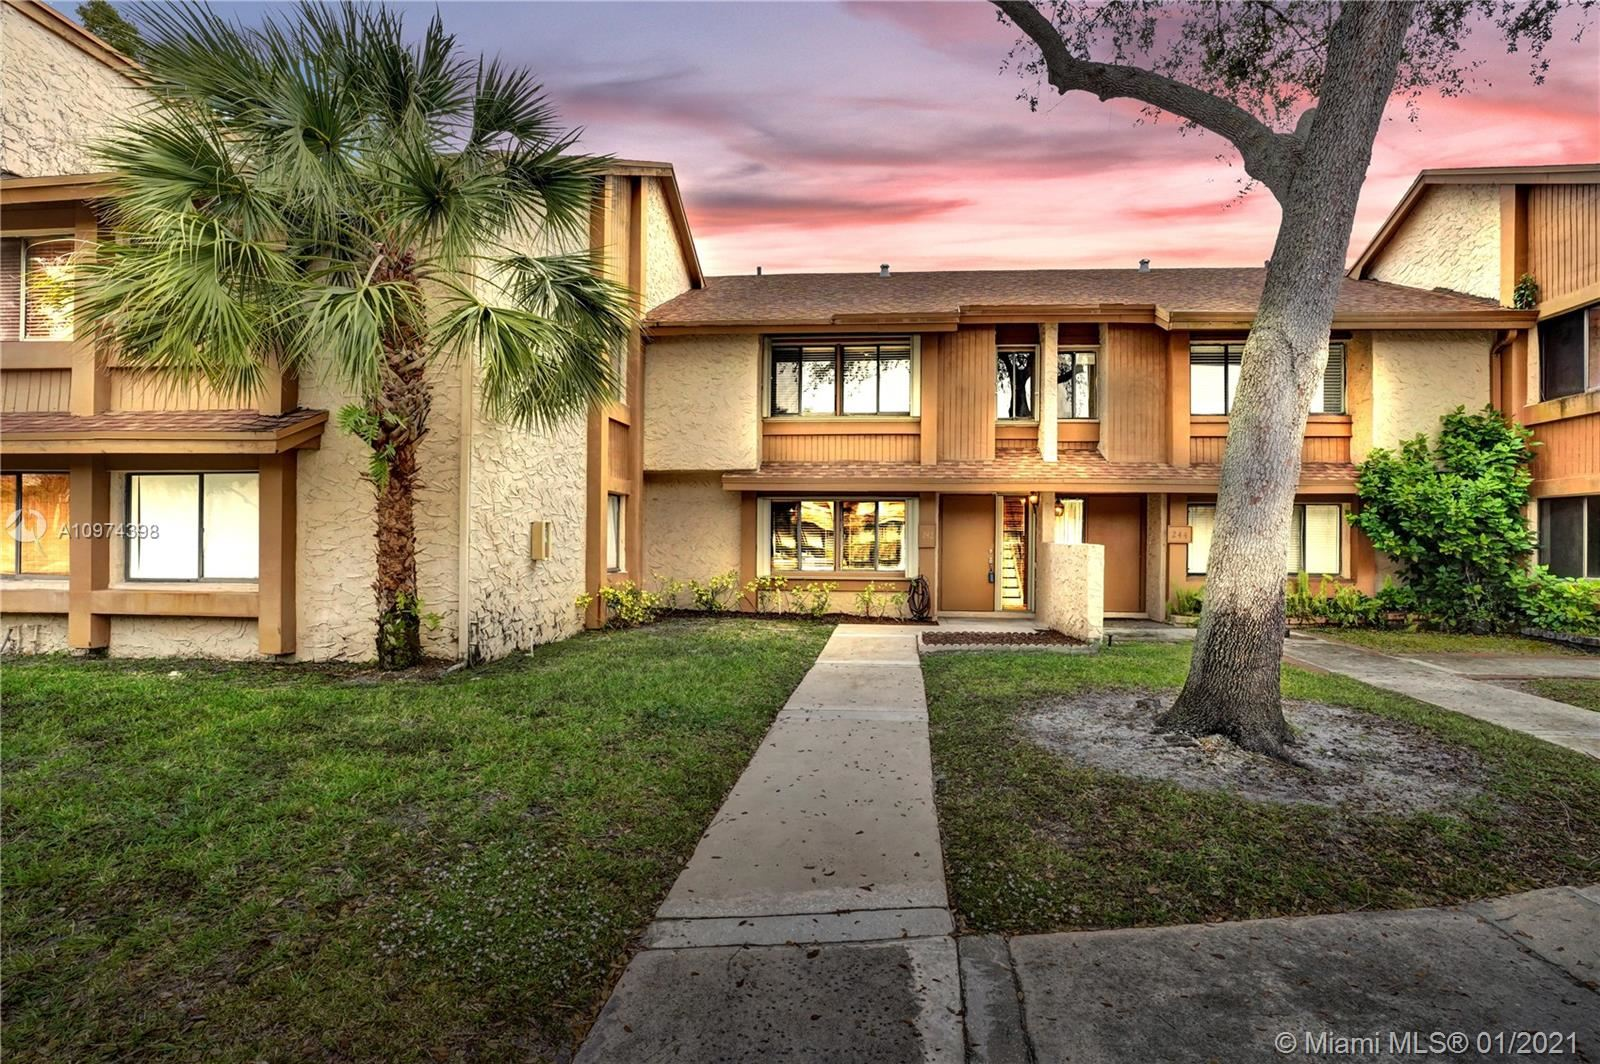 242 Wimbledon Lake Dr #242, Plantation, FL 33324 - #: A10974398